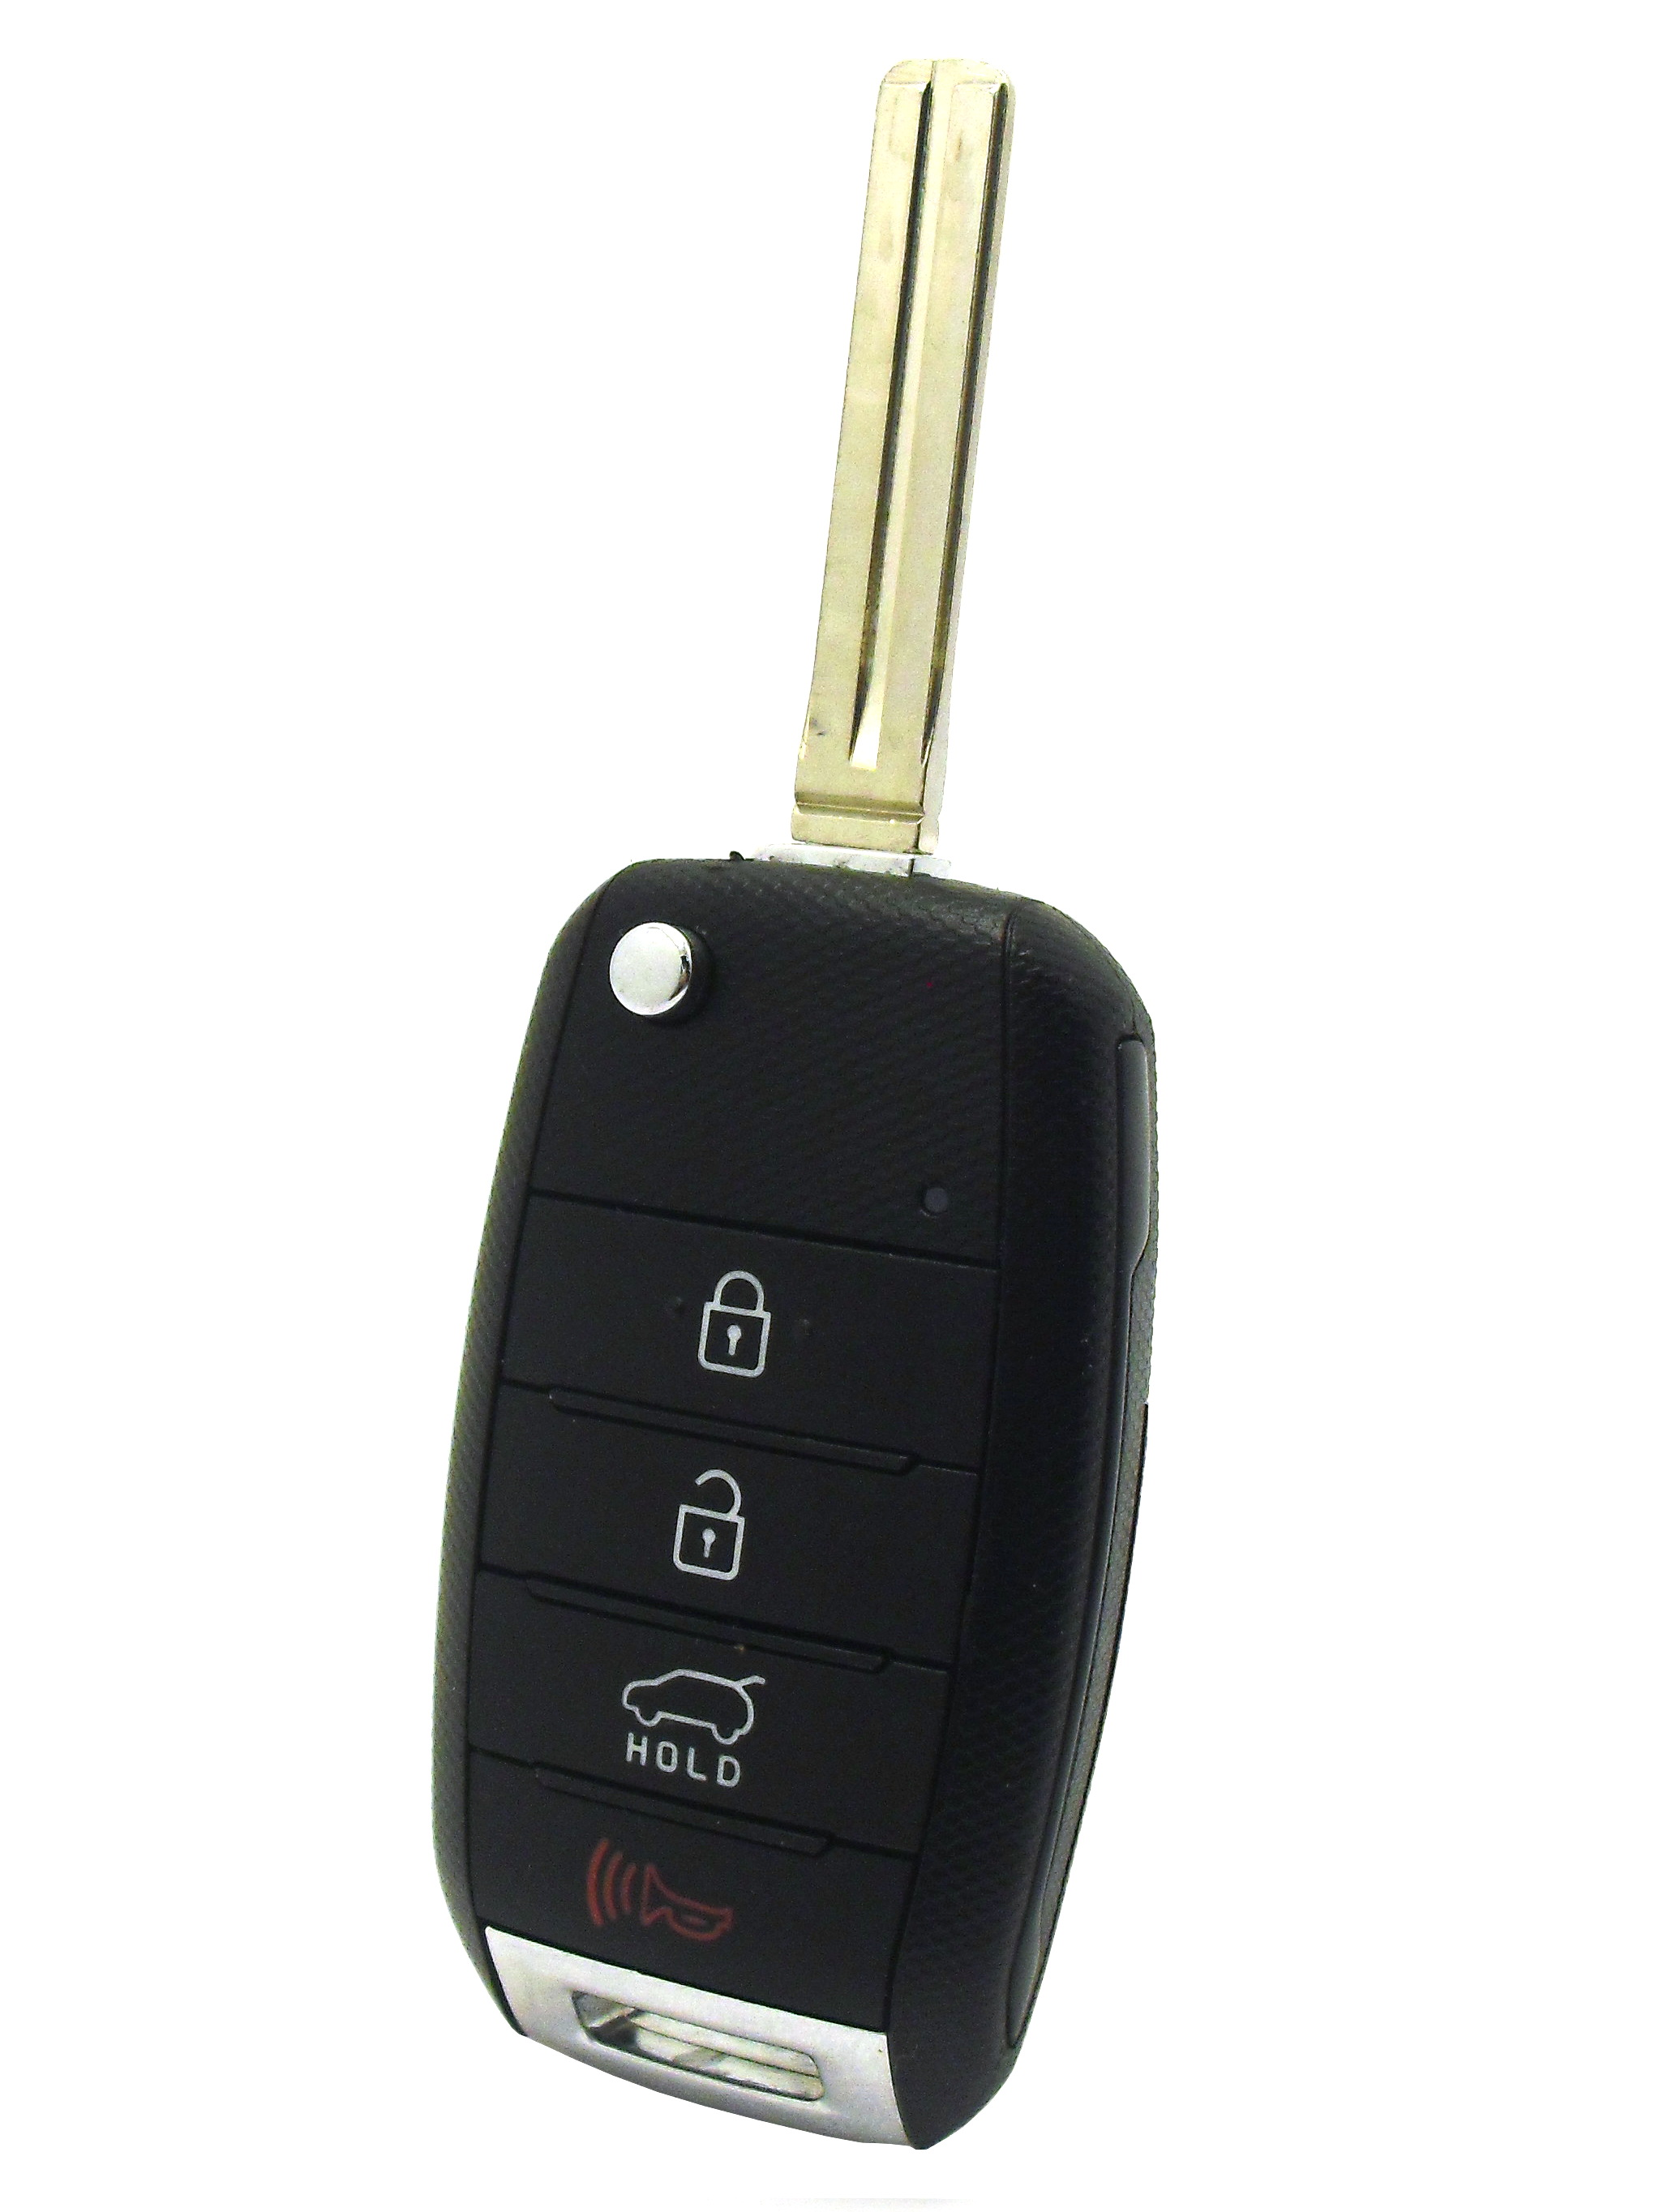 Keyless Entry And Flip Key 4 Button For 2017 Kia Soul Remote Covers